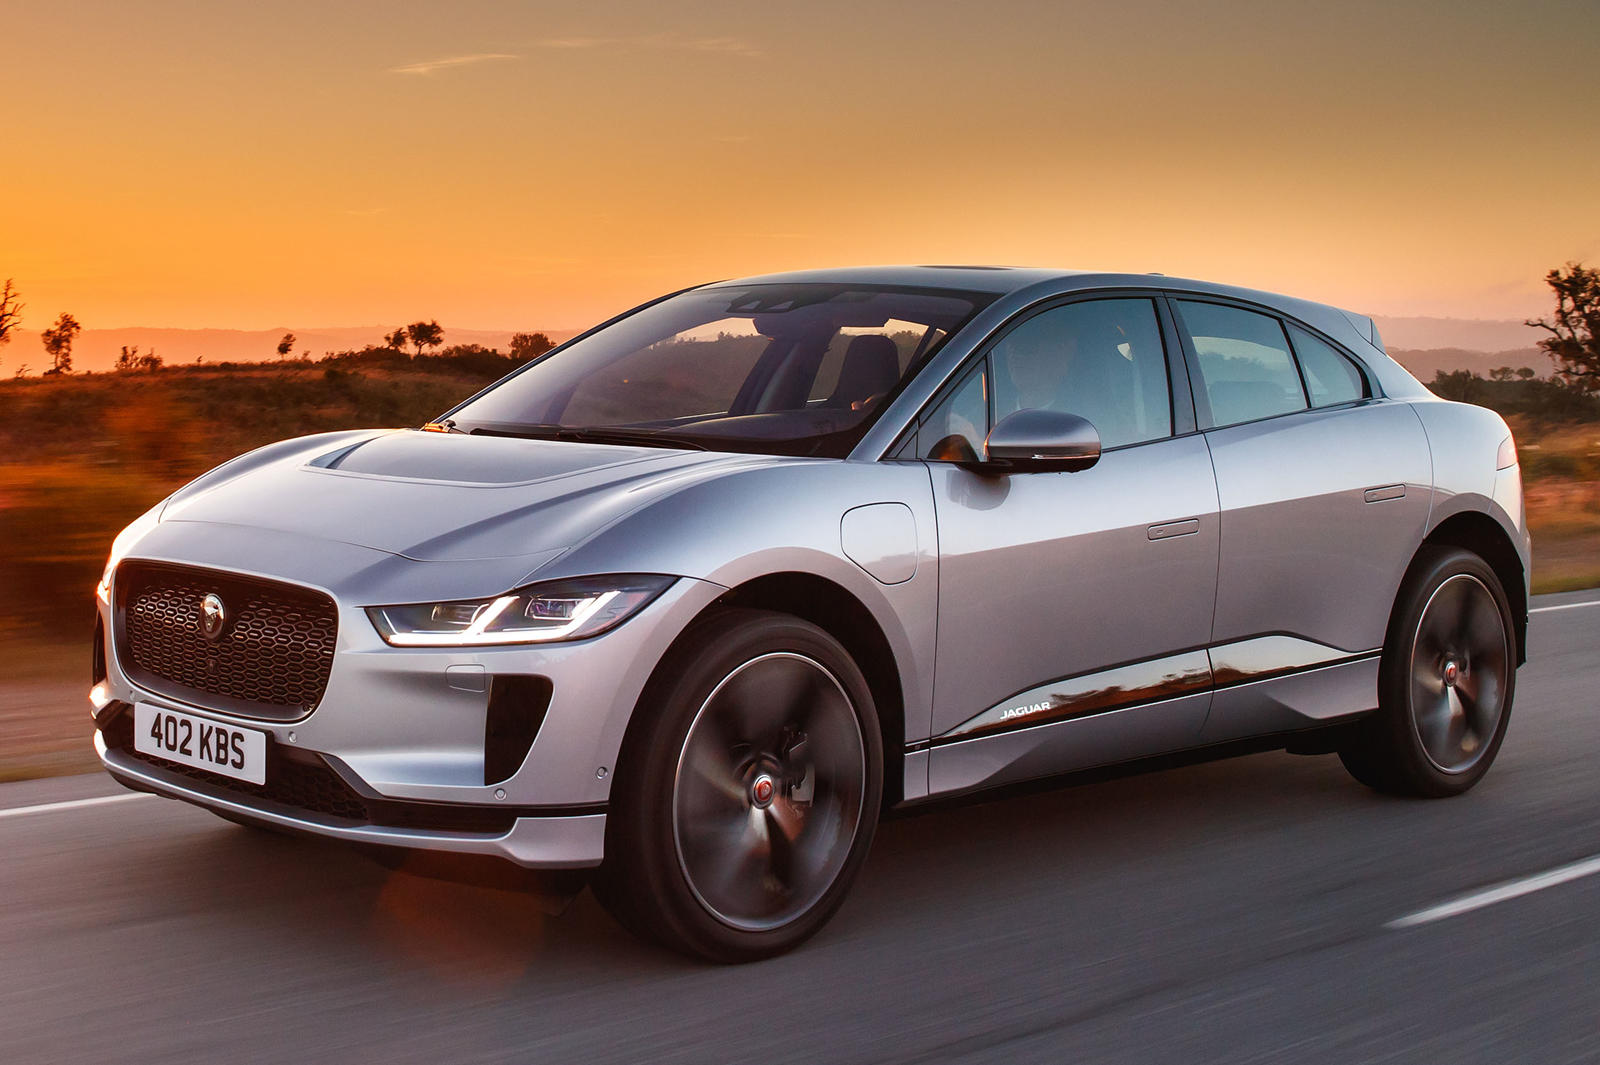 6817f7438e3 There's A Serious Problem With The Jaguar I-Pace